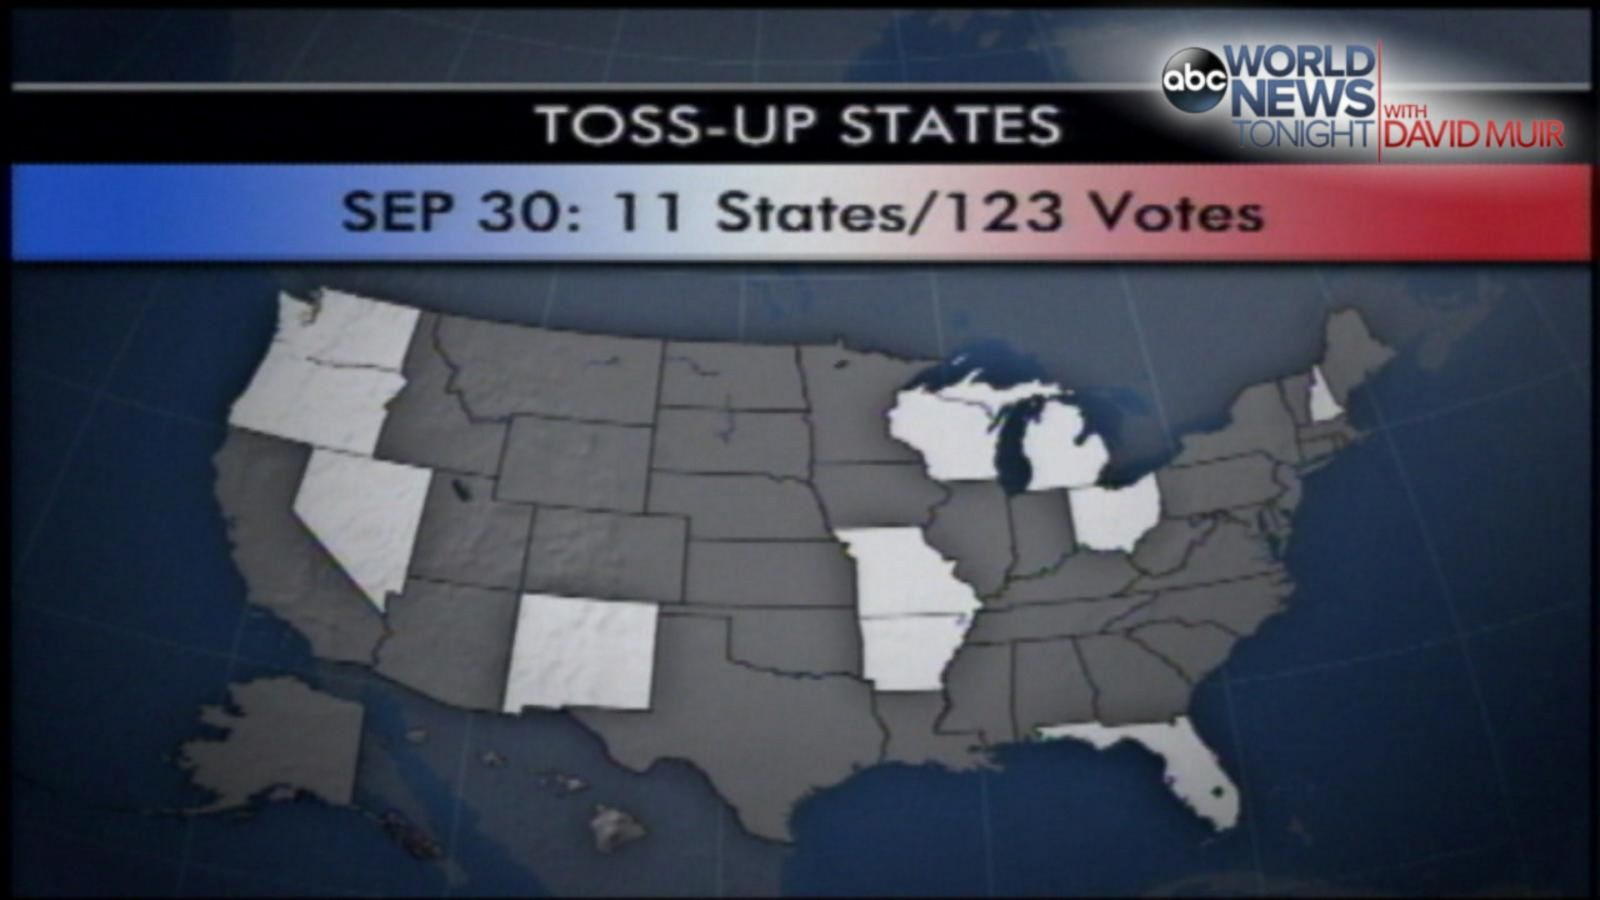 VIDEO: 2000 - 15 Days: ABC News Gore vs. Bush Polling a 'Toss-Up'